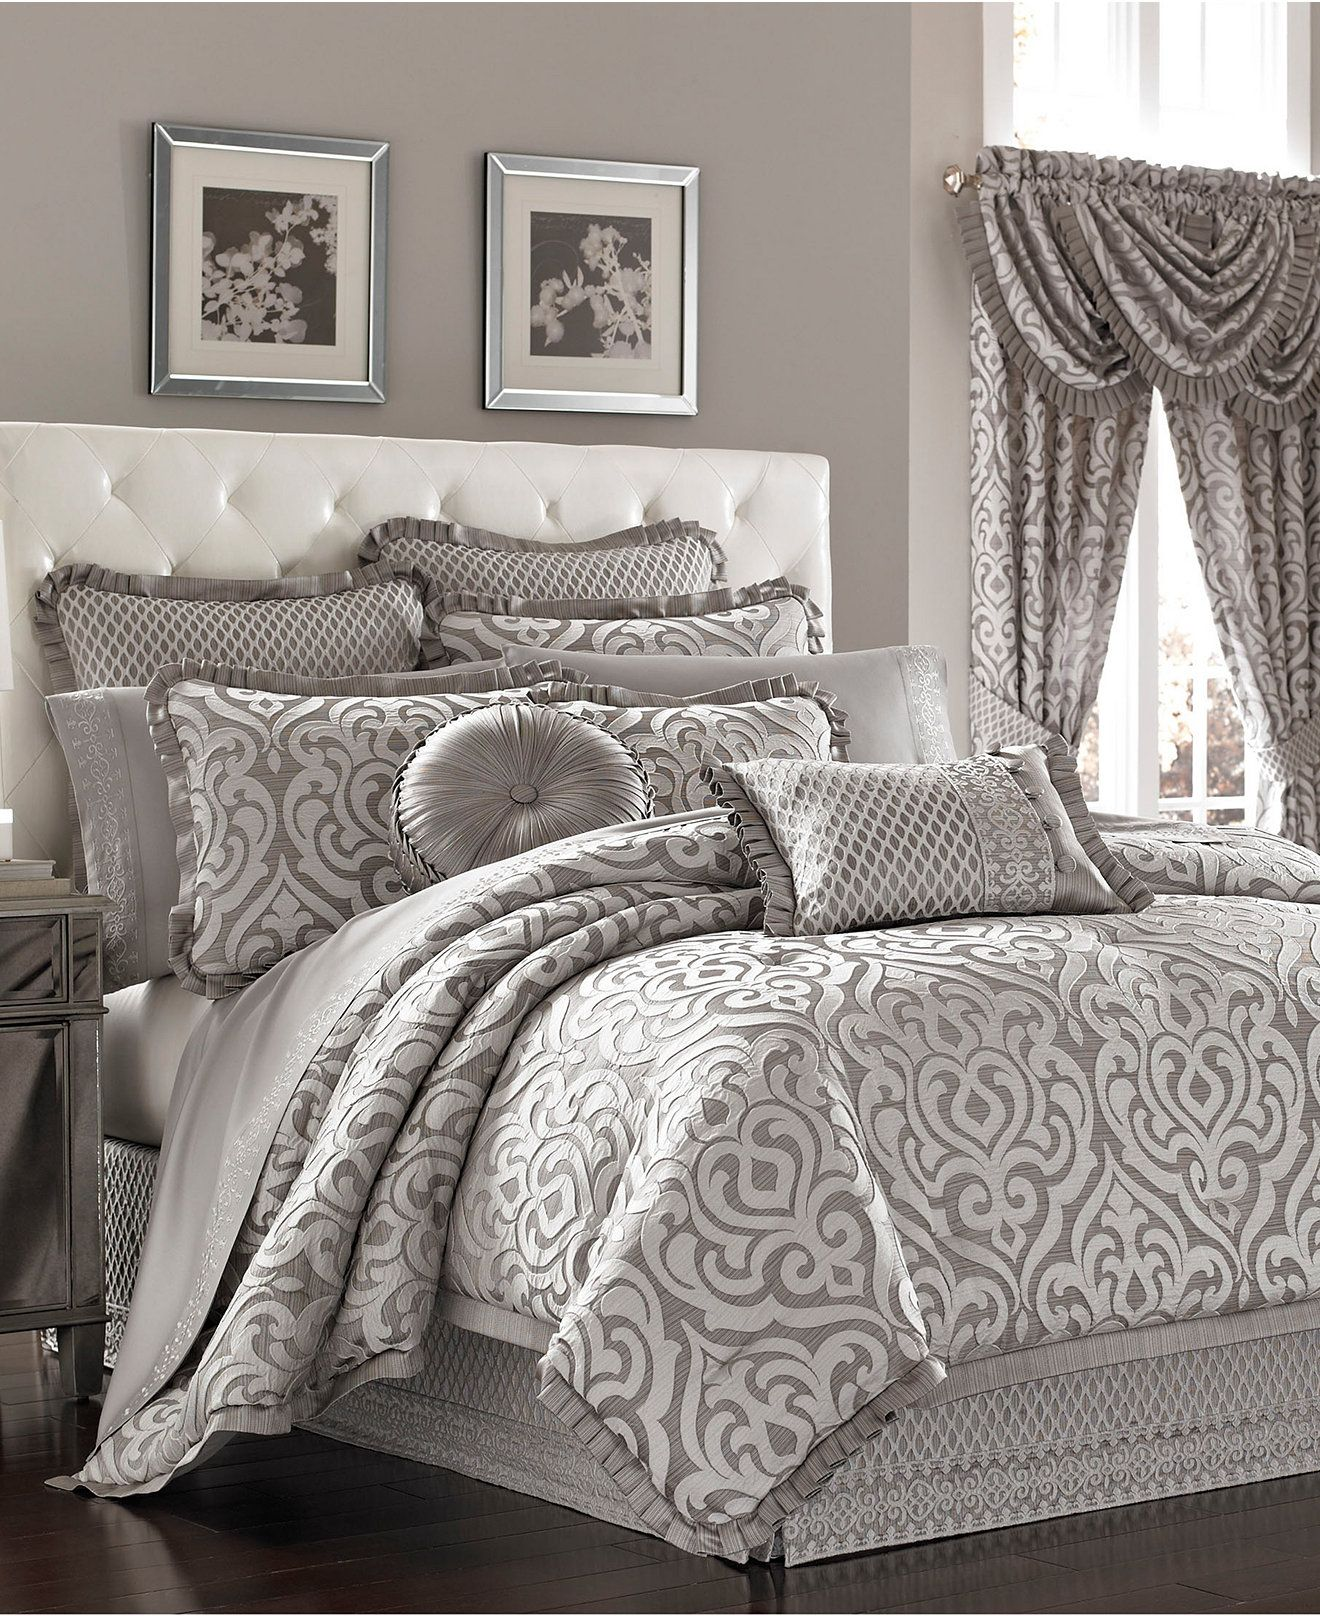 Queen new york luxembourg comforter set in antique silver bed - J Queen New York Babylon Queen Comforter Set